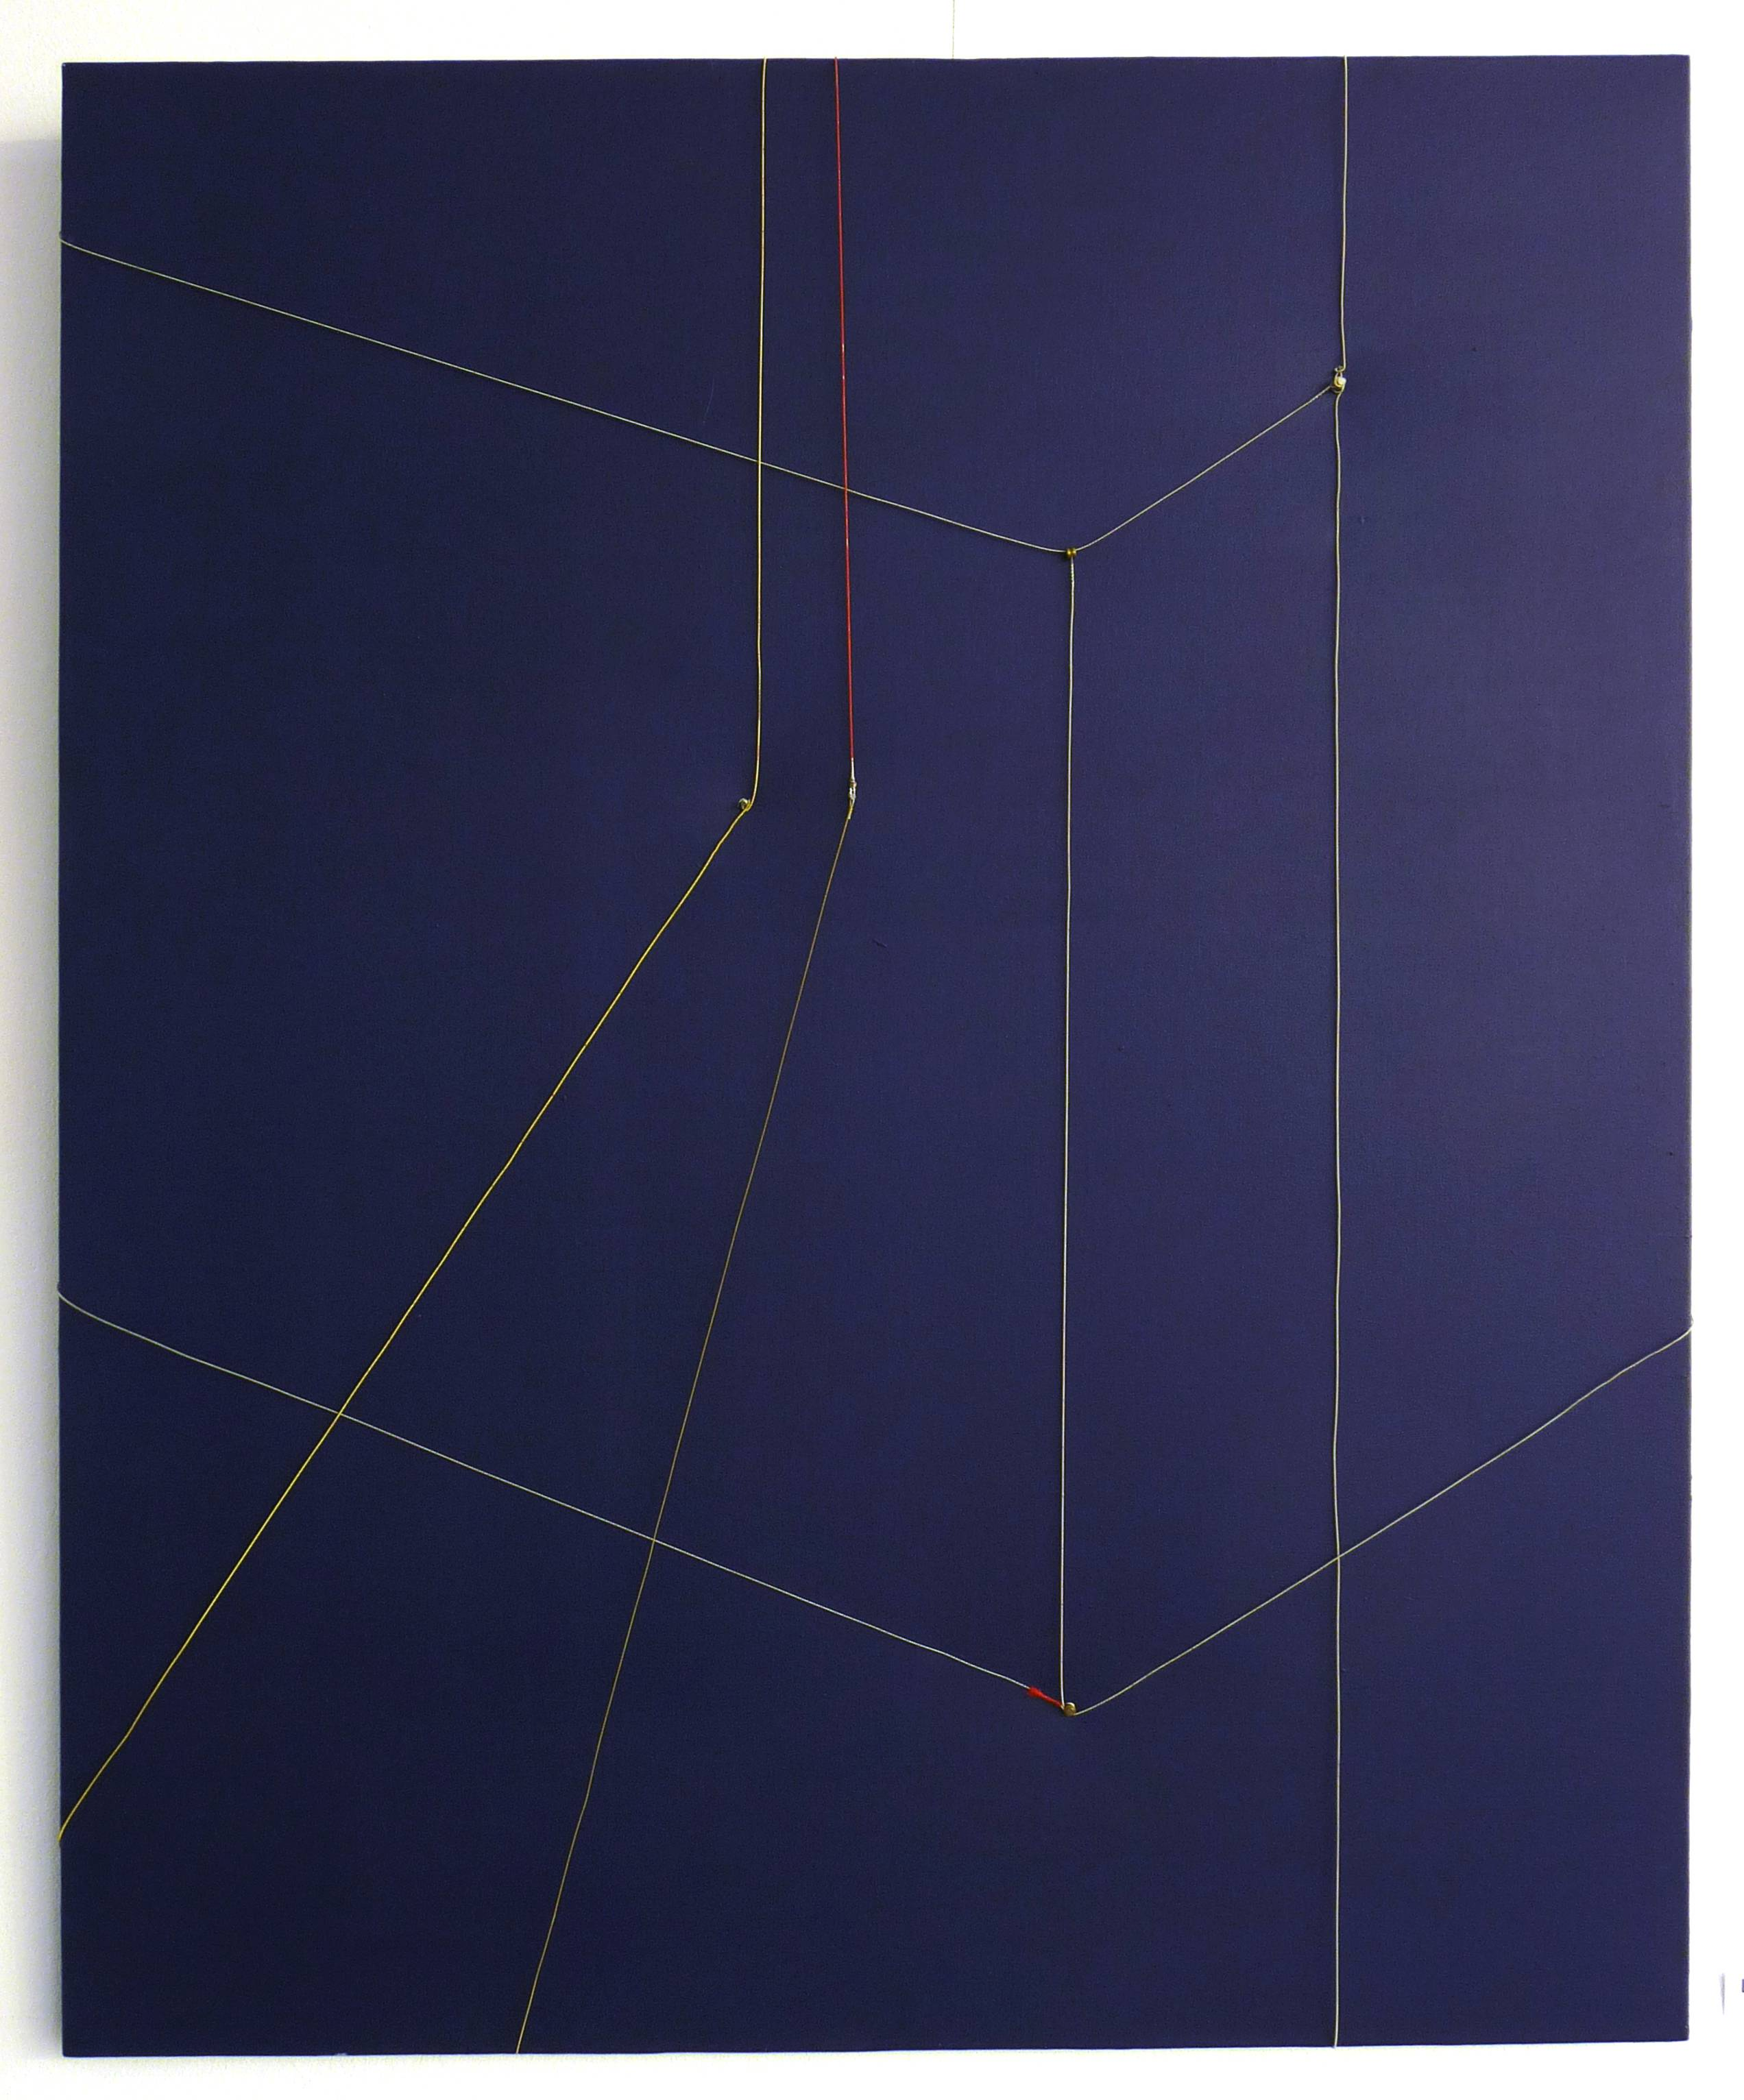 Far away in cyberspace, 2012, mixt technique( guitar strings, acrylic on canvas), 110x90cm